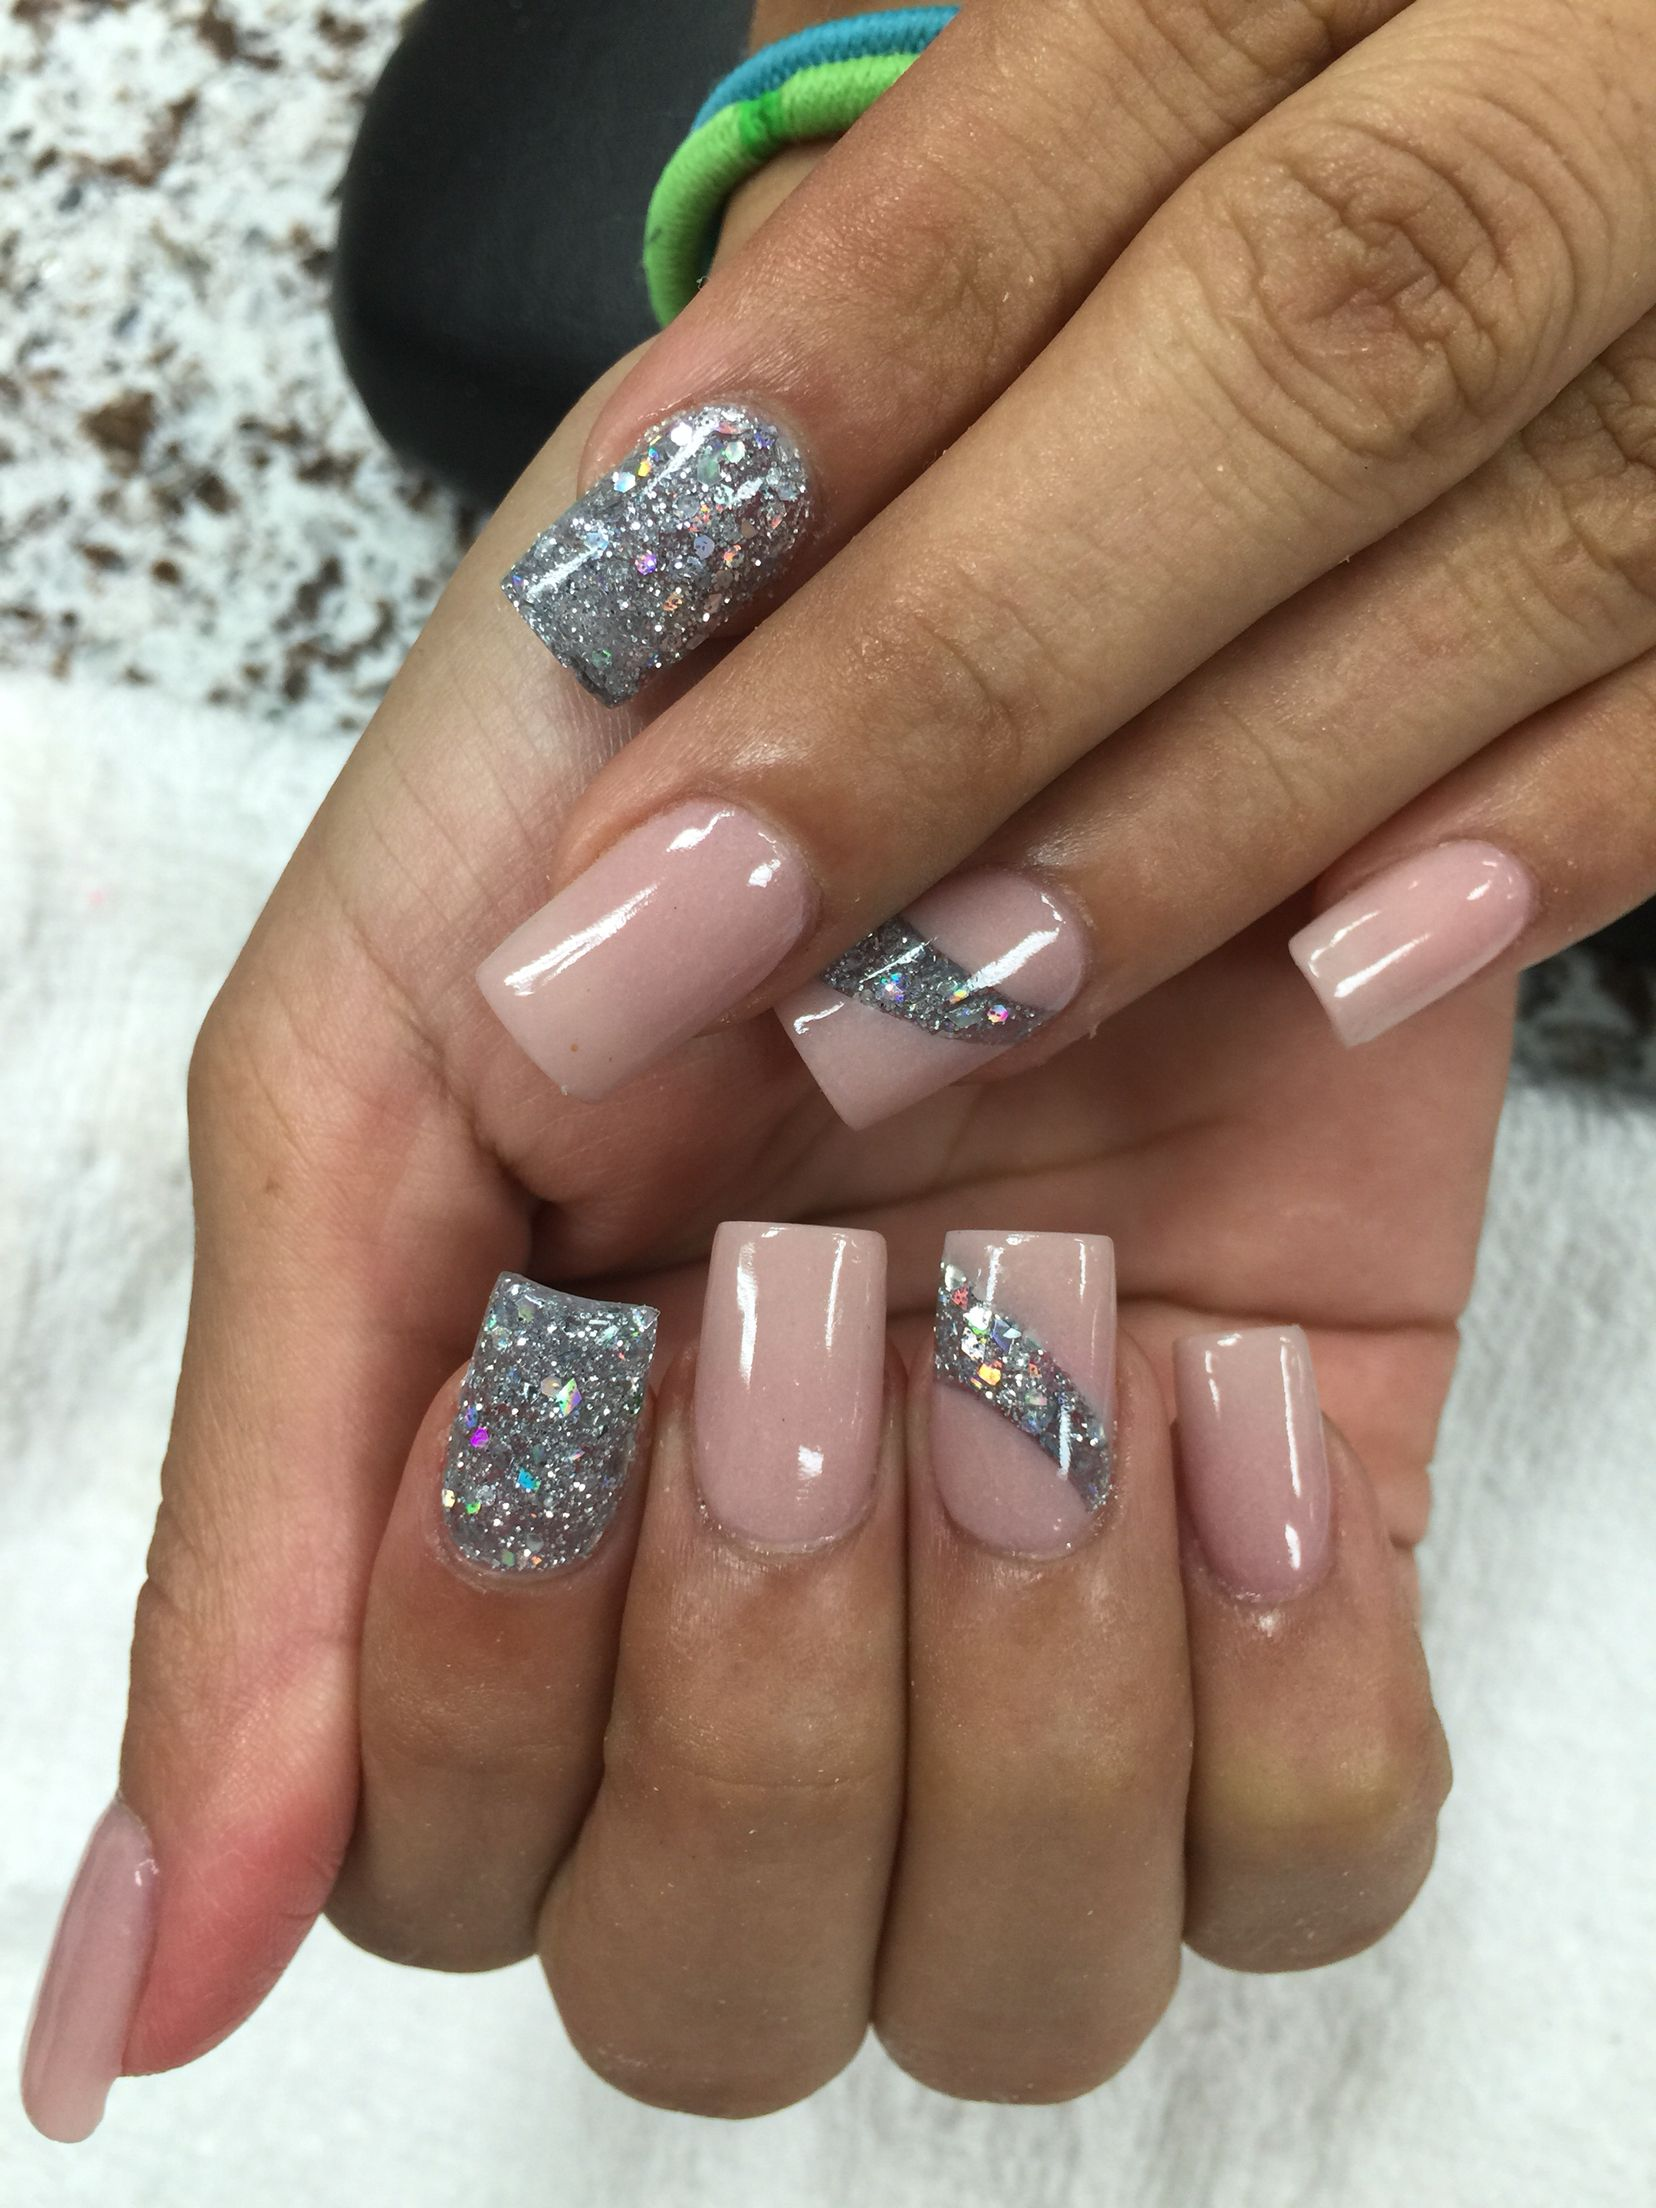 Evon Nails & Spa .2575 Eldridge Rd Sugar Land, TX 77478 ...